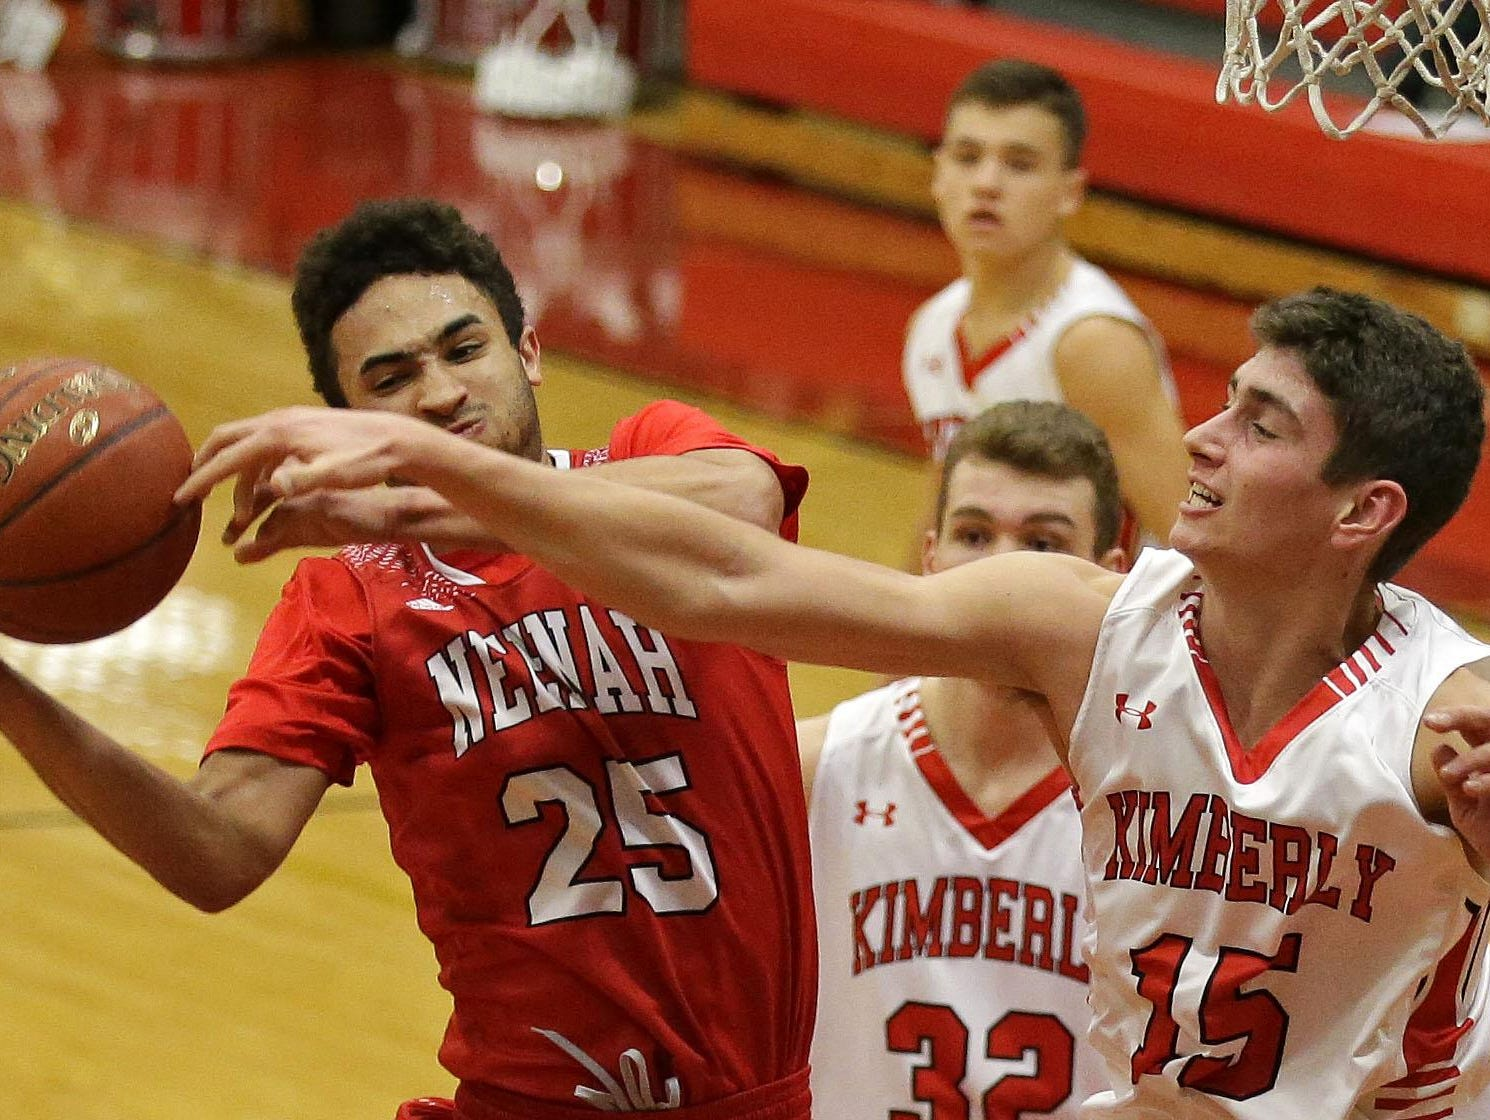 Zavier Sims of Neenah goes up strong against Kimberly's Danny Vanden Boom in a recent Fox Valley Association basketball game. Sims, a senior, has battled back from brain surgery prior to his freshman year.